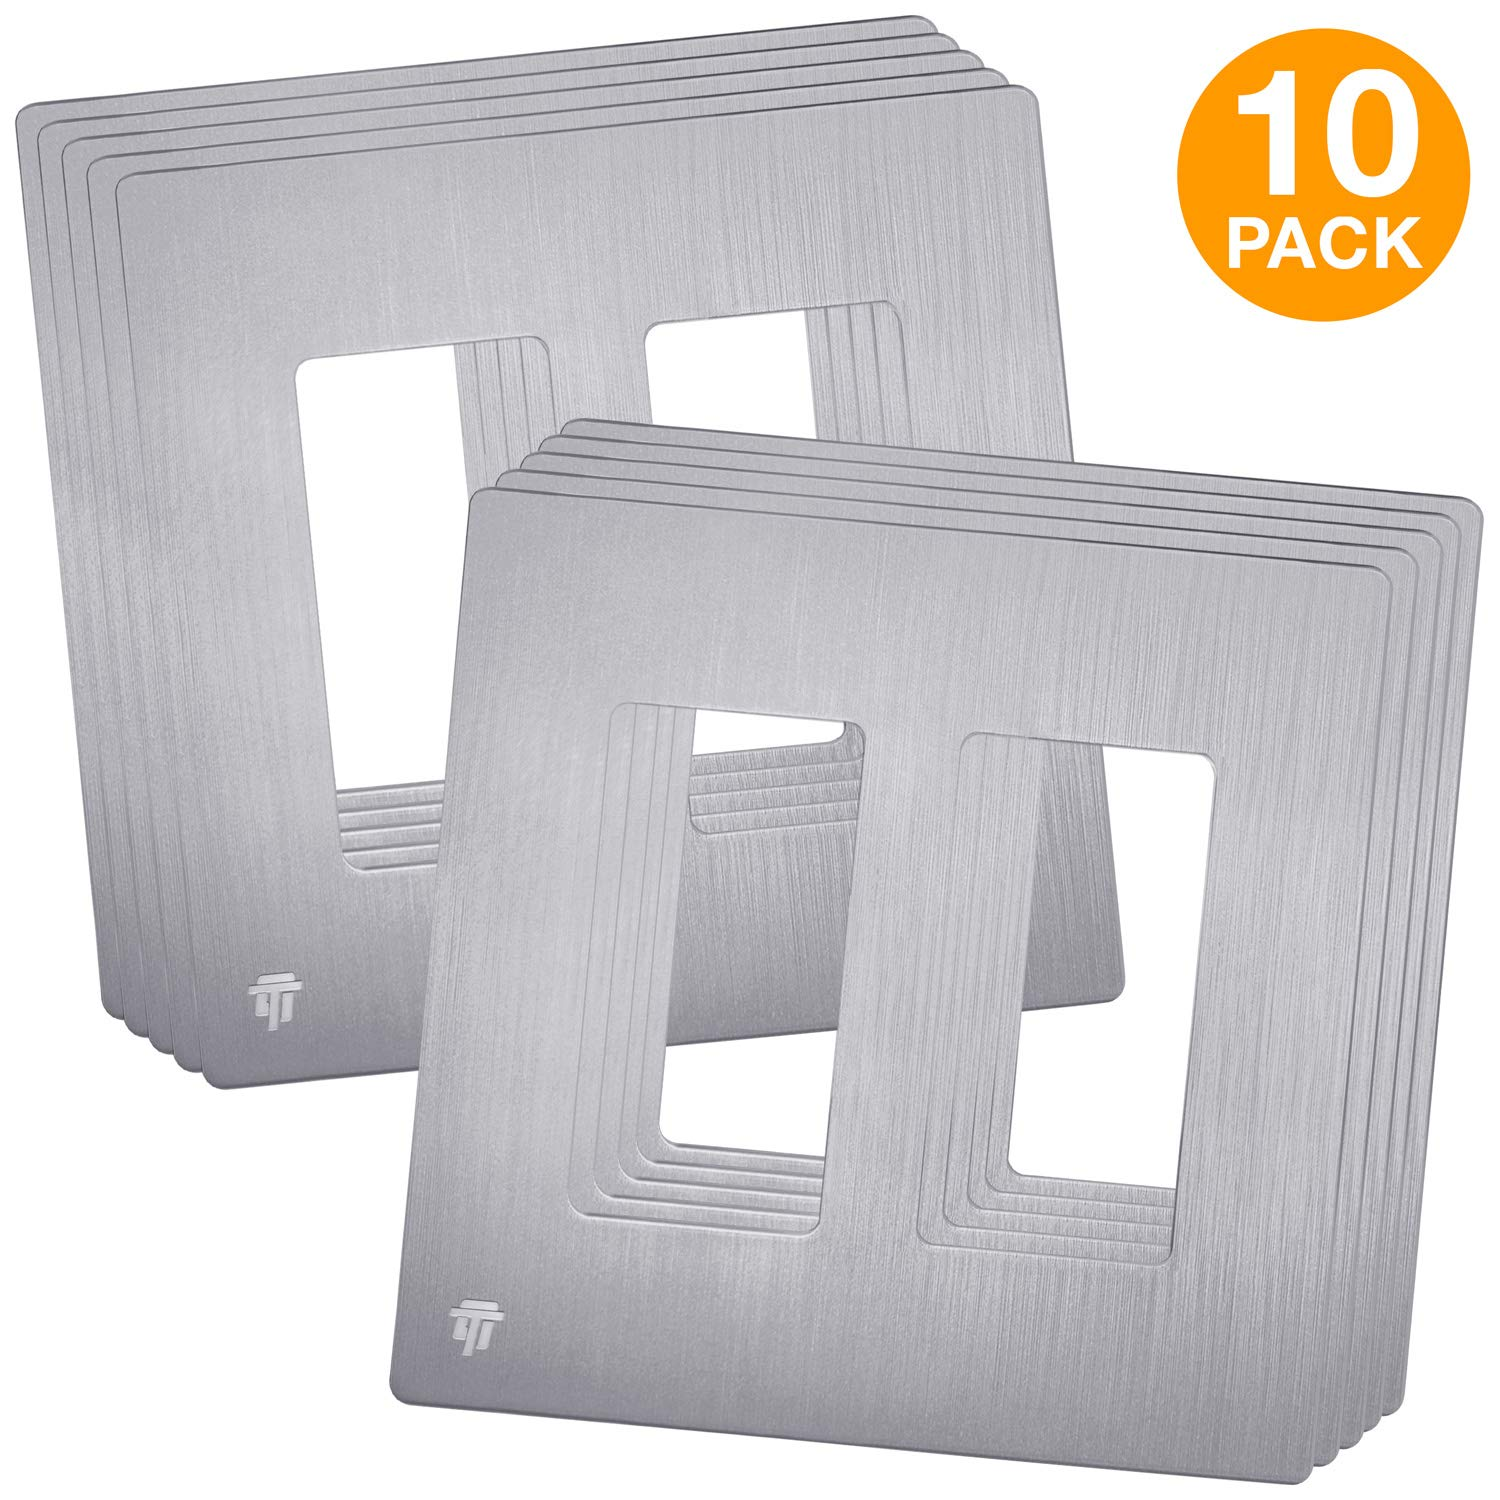 ENERLITES Elite Series Brushed Screwless Decorator Wall Plate Child Safe Cover, Standard Size 2-Gang, Unbreakable Polycarbonate Thermoplastic, Silver, SI8832-BSV, 10 Pack